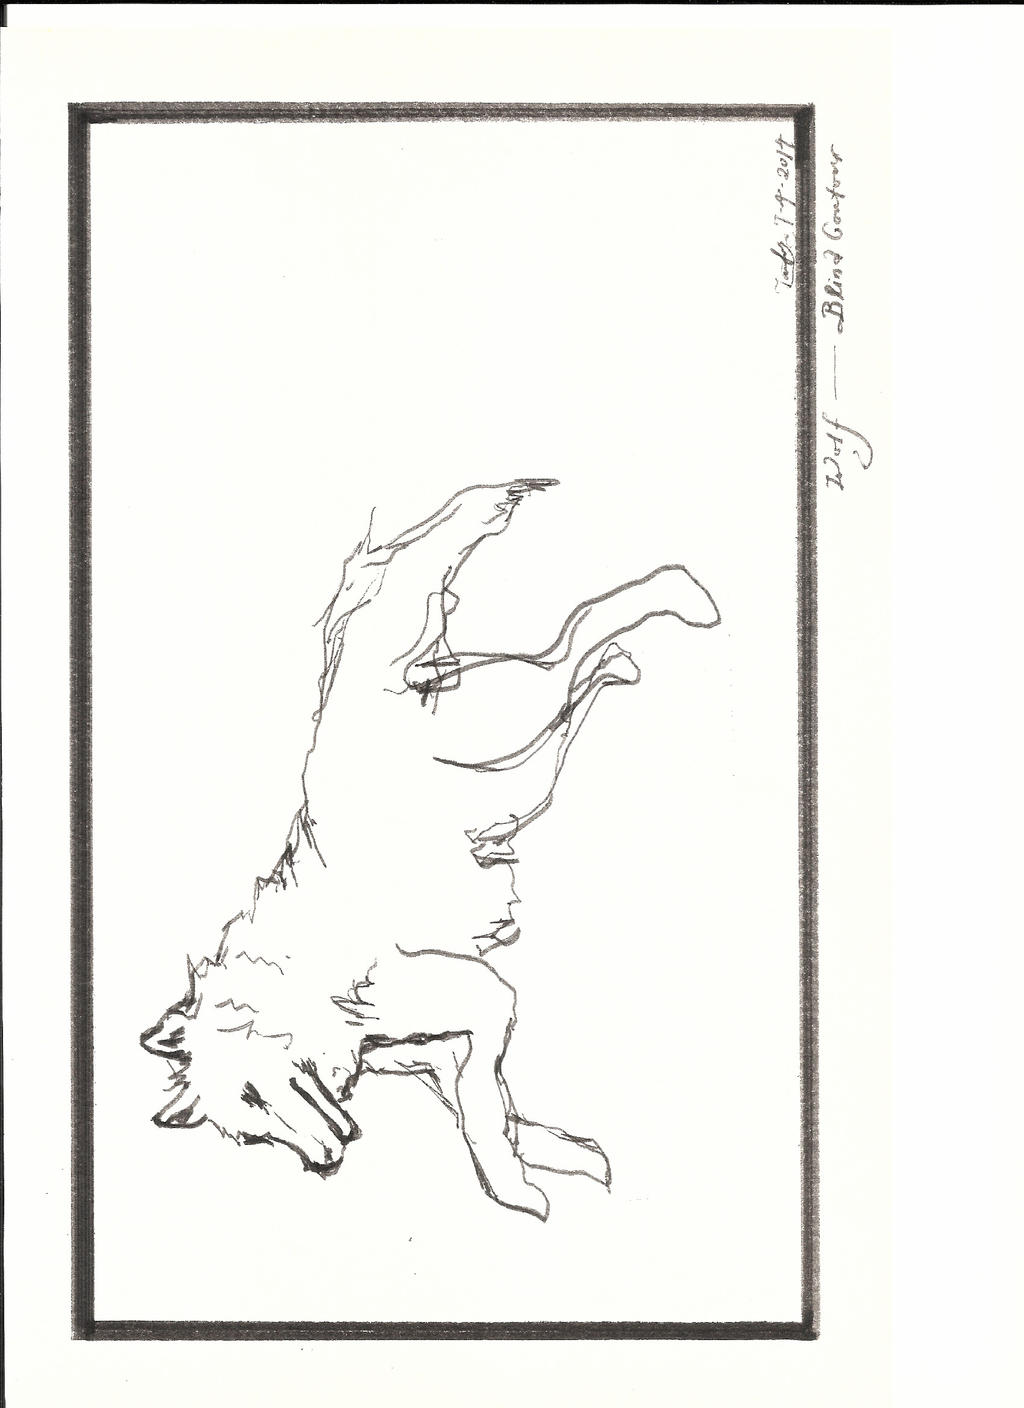 Contour Line Drawings Of Animals : Blind contour of wolf by dilystam on deviantart